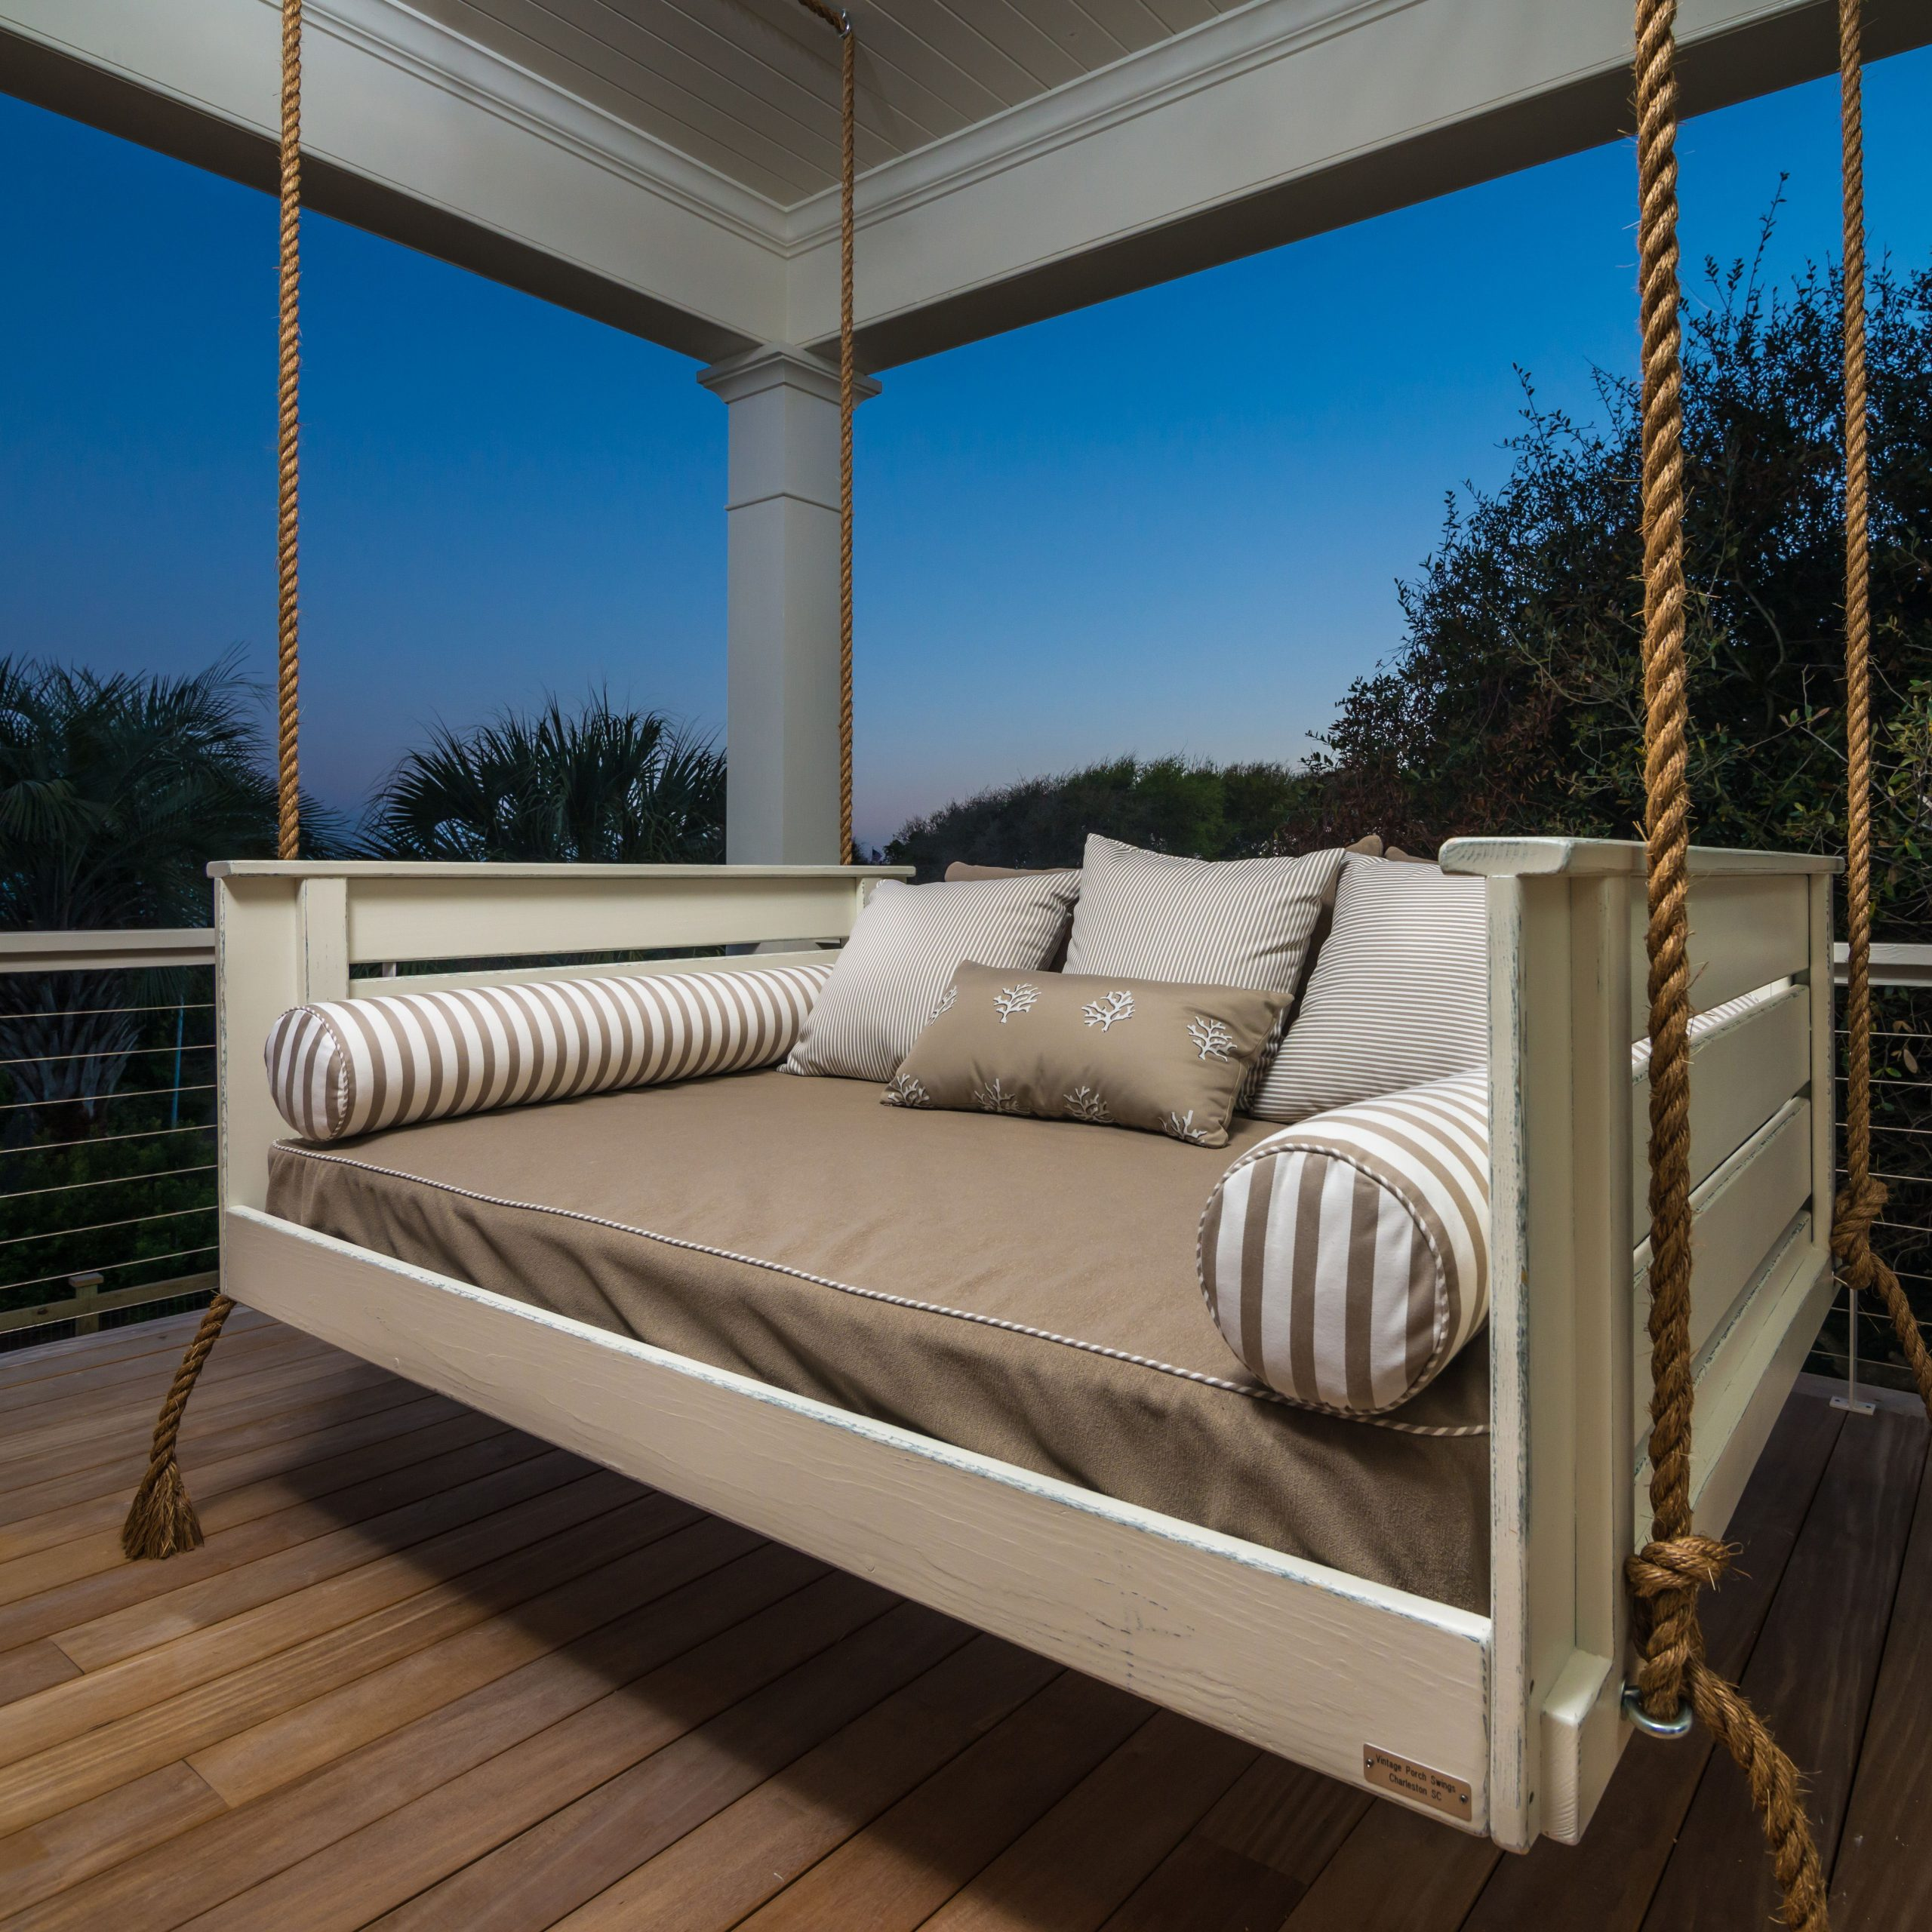 Incredible Swinging Outdoor Beds – Trend Design Models With Regard To Day Bed Porch Swings (Image 15 of 25)